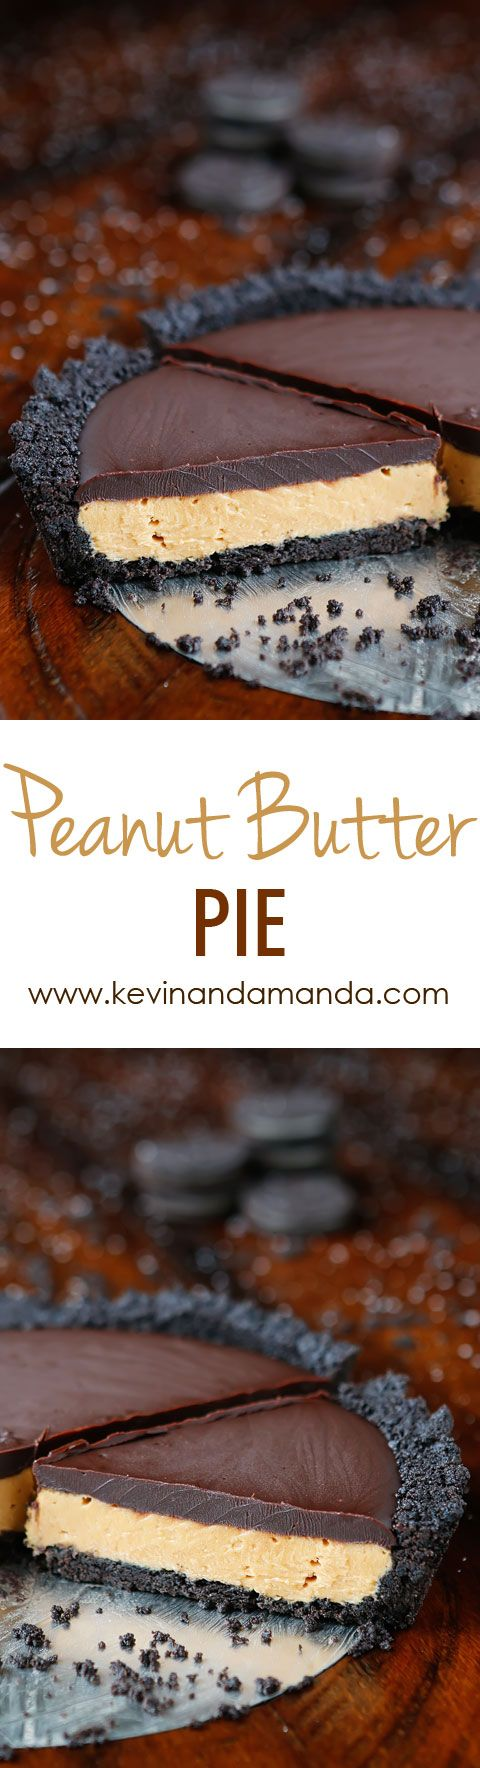 The BEST No-Bake Peanut Butter Pie recipe with NO cream cheese and NO cool whip!